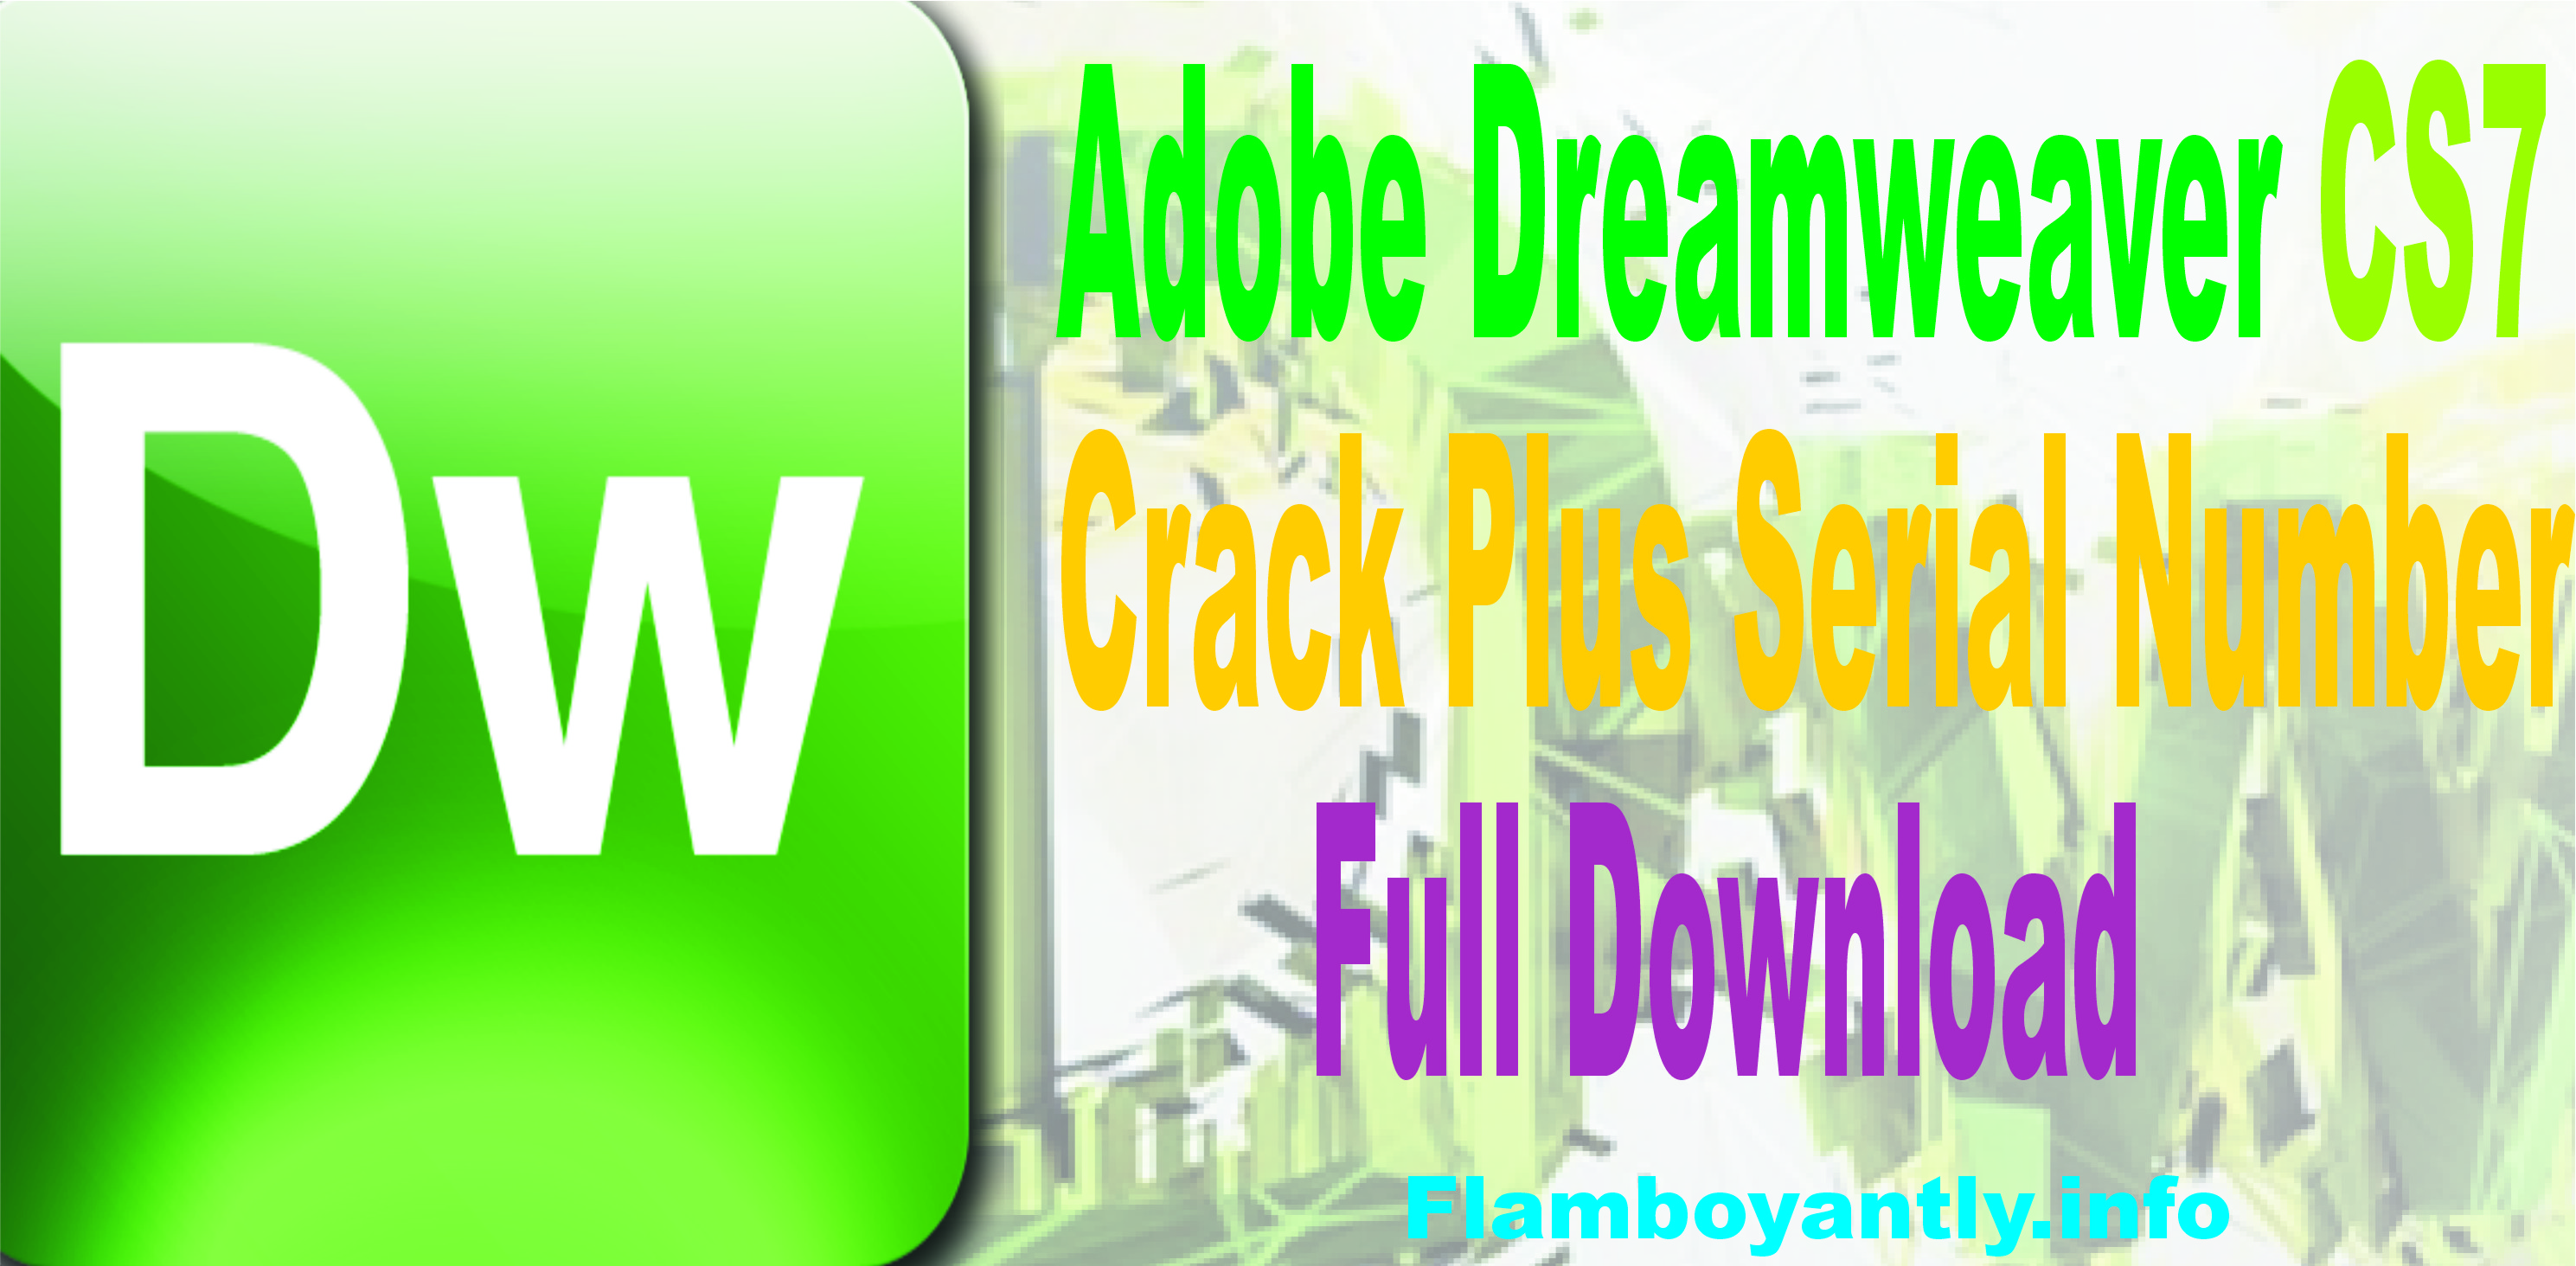 Adobe Dreamweaver CS7 Crack Plus Serial Number Full Download